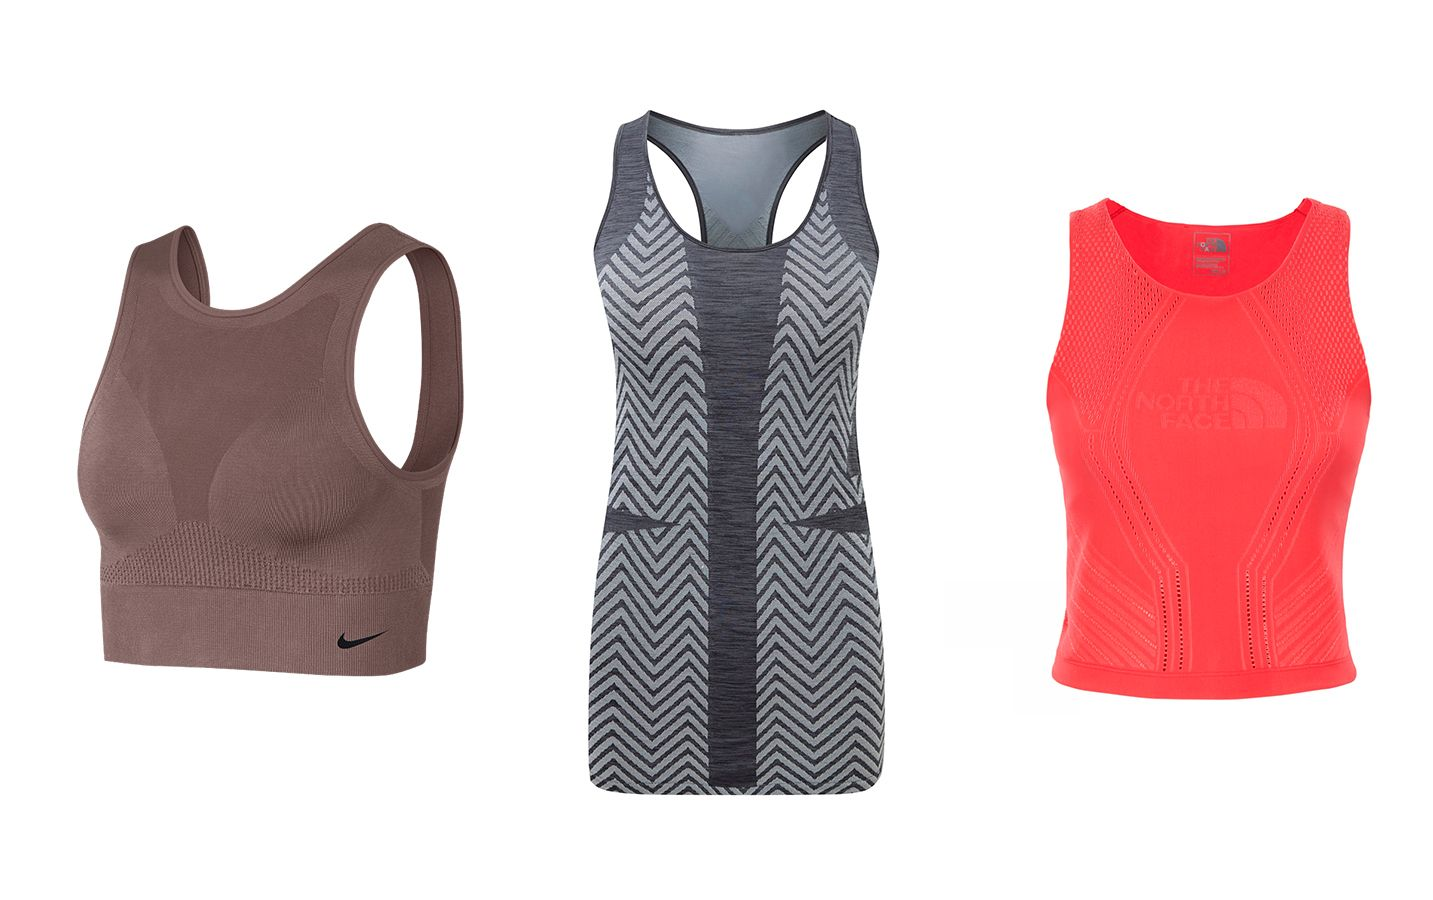 8bda93da1 The best women's running tops - for those who don't want to run in ...